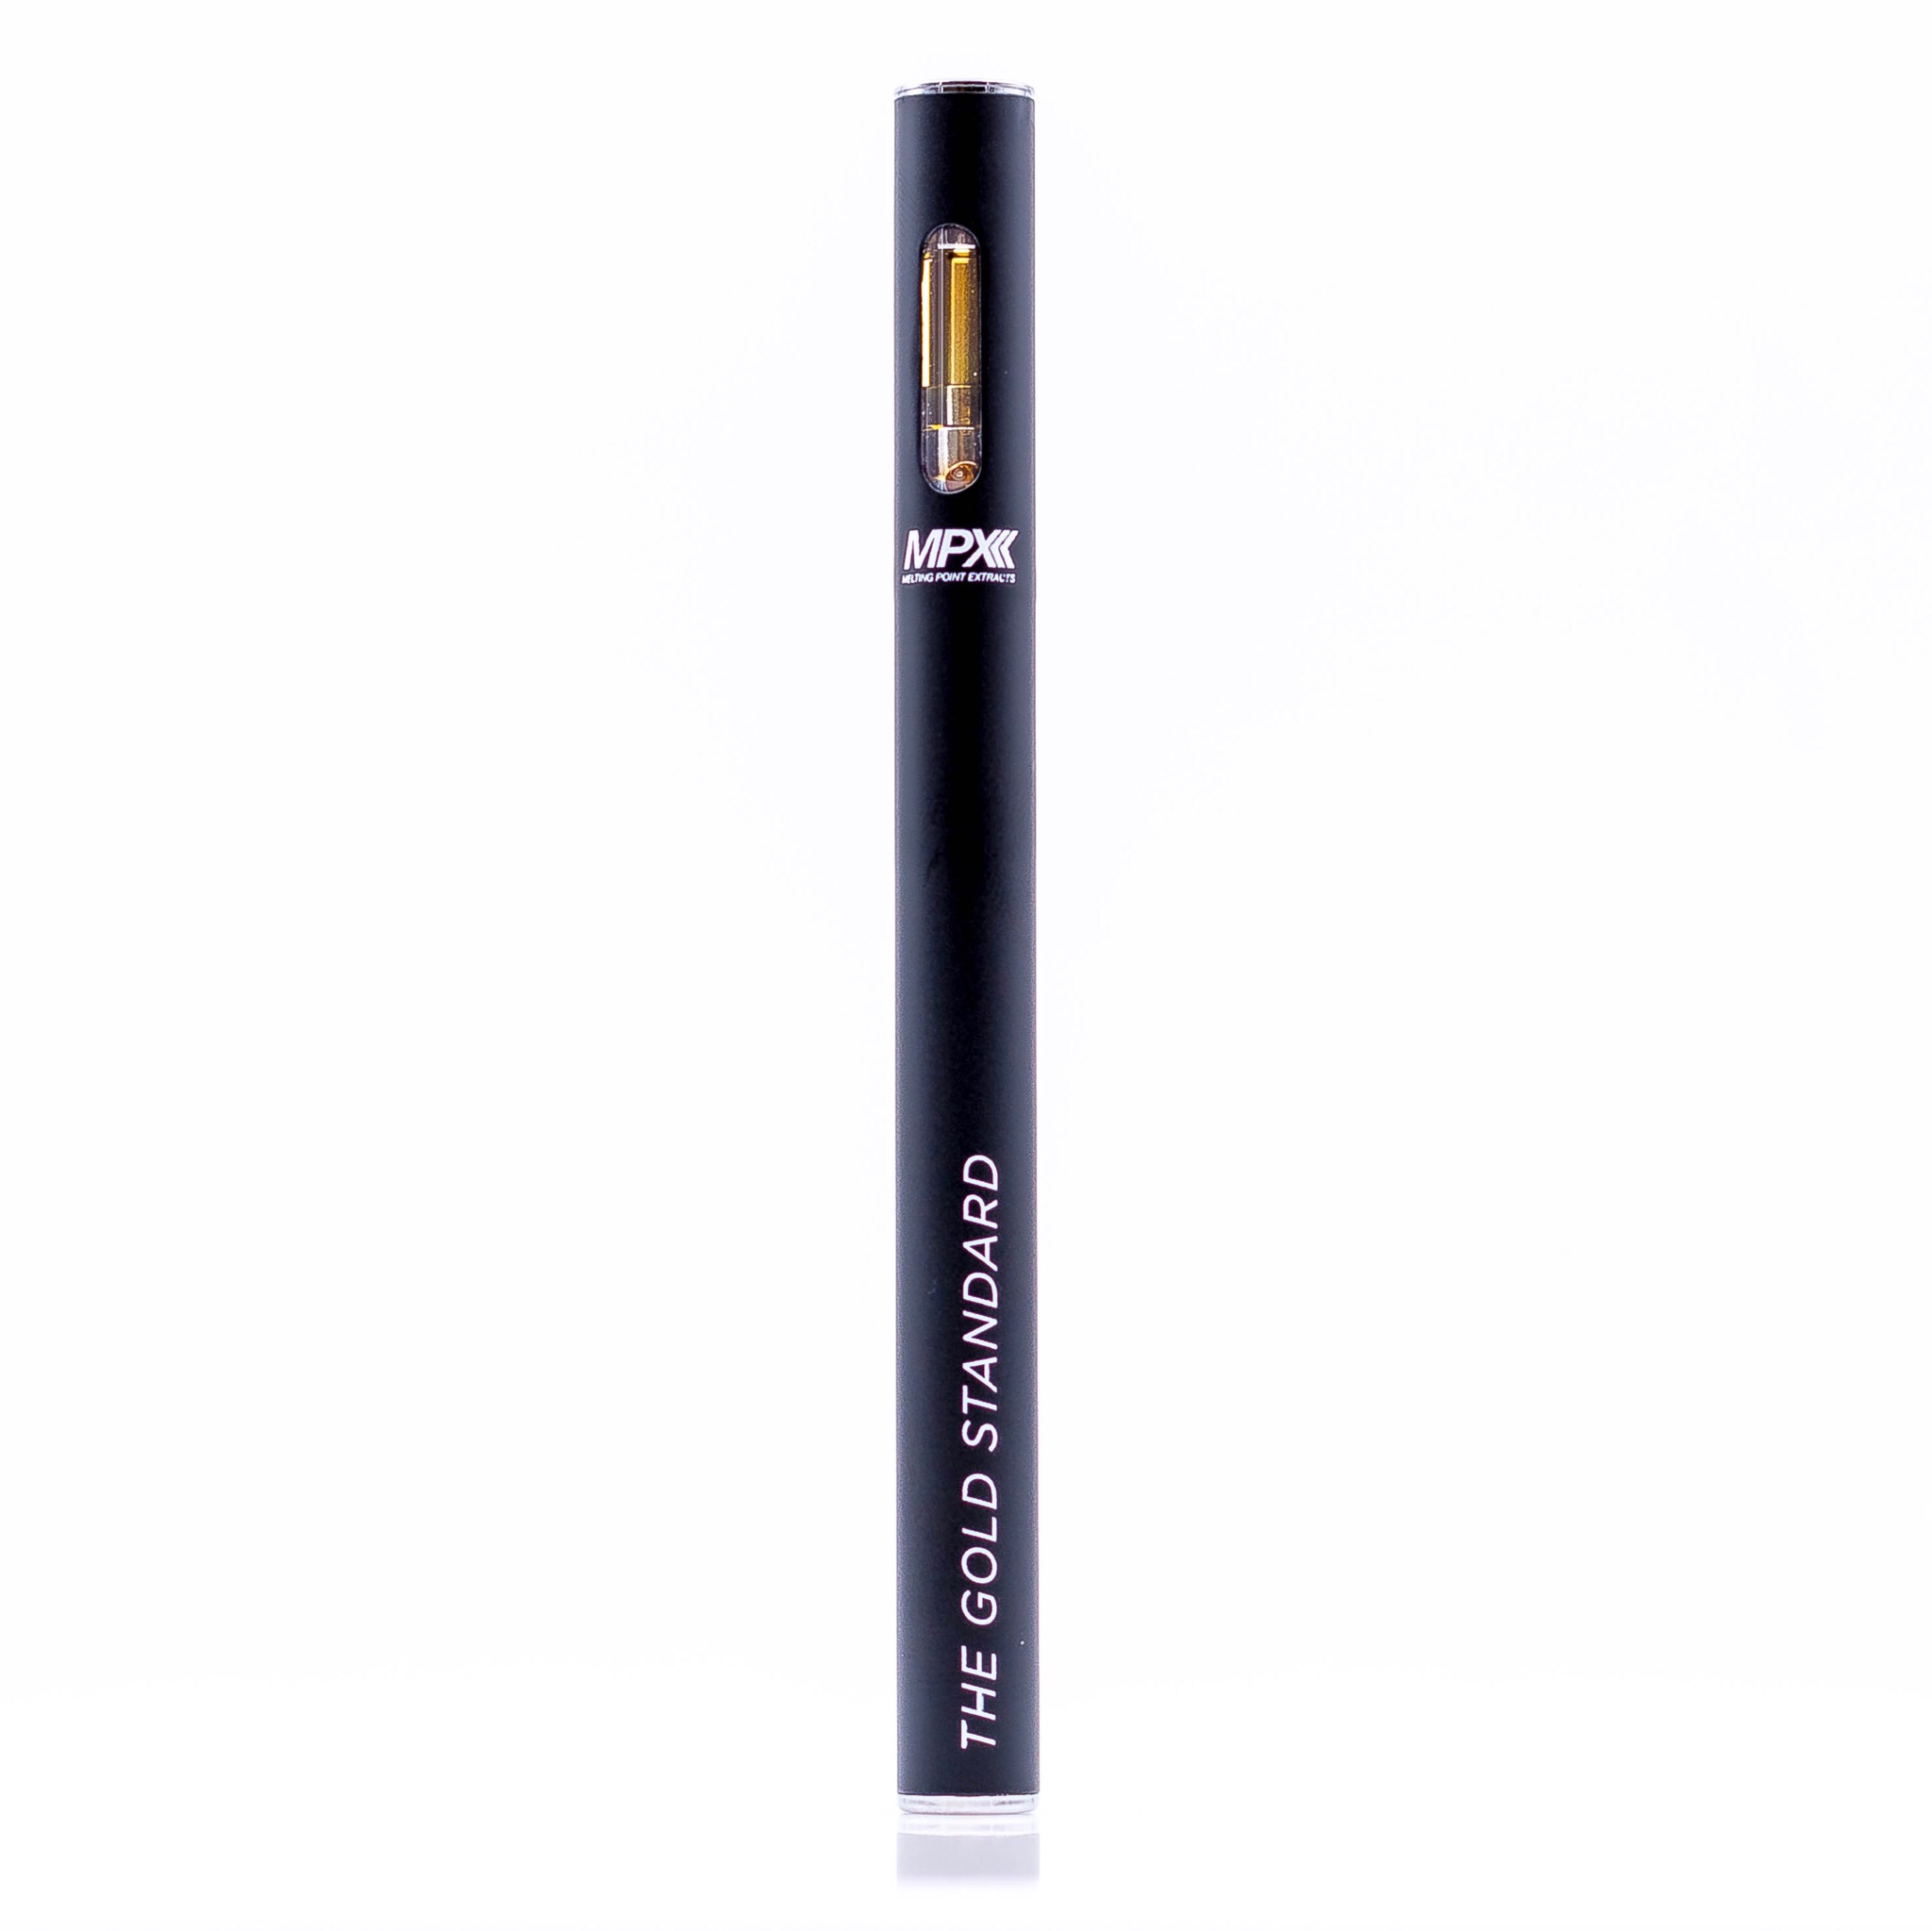 MPX Disposable Vape Pen - We are happy to announce that our MPX Disposable pens are now available !Multiple strains to choose from -.5g THC distillate for $40